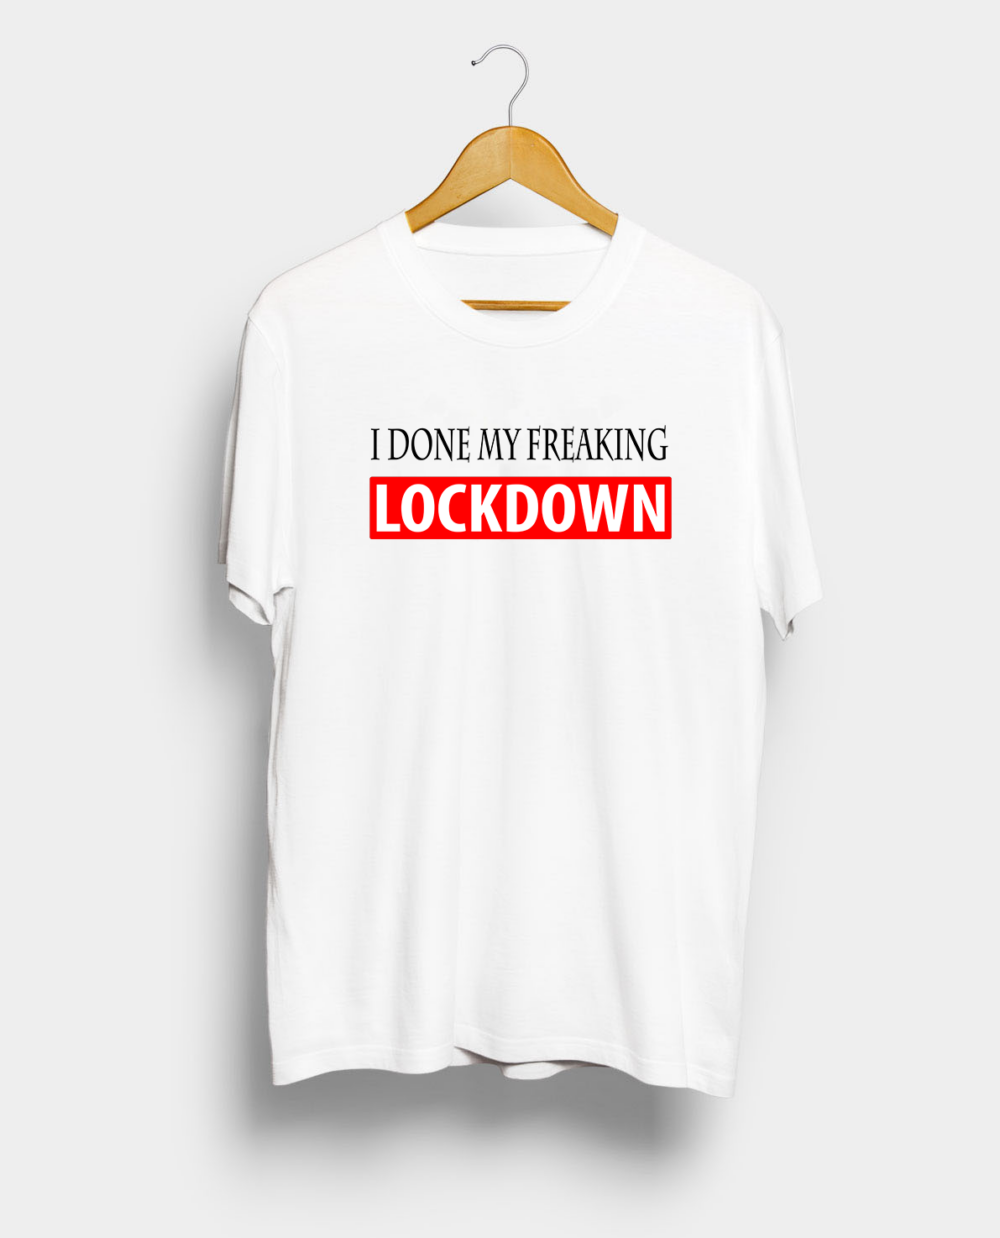 I Done My Freaking LockDown Graphic Printed T shirt